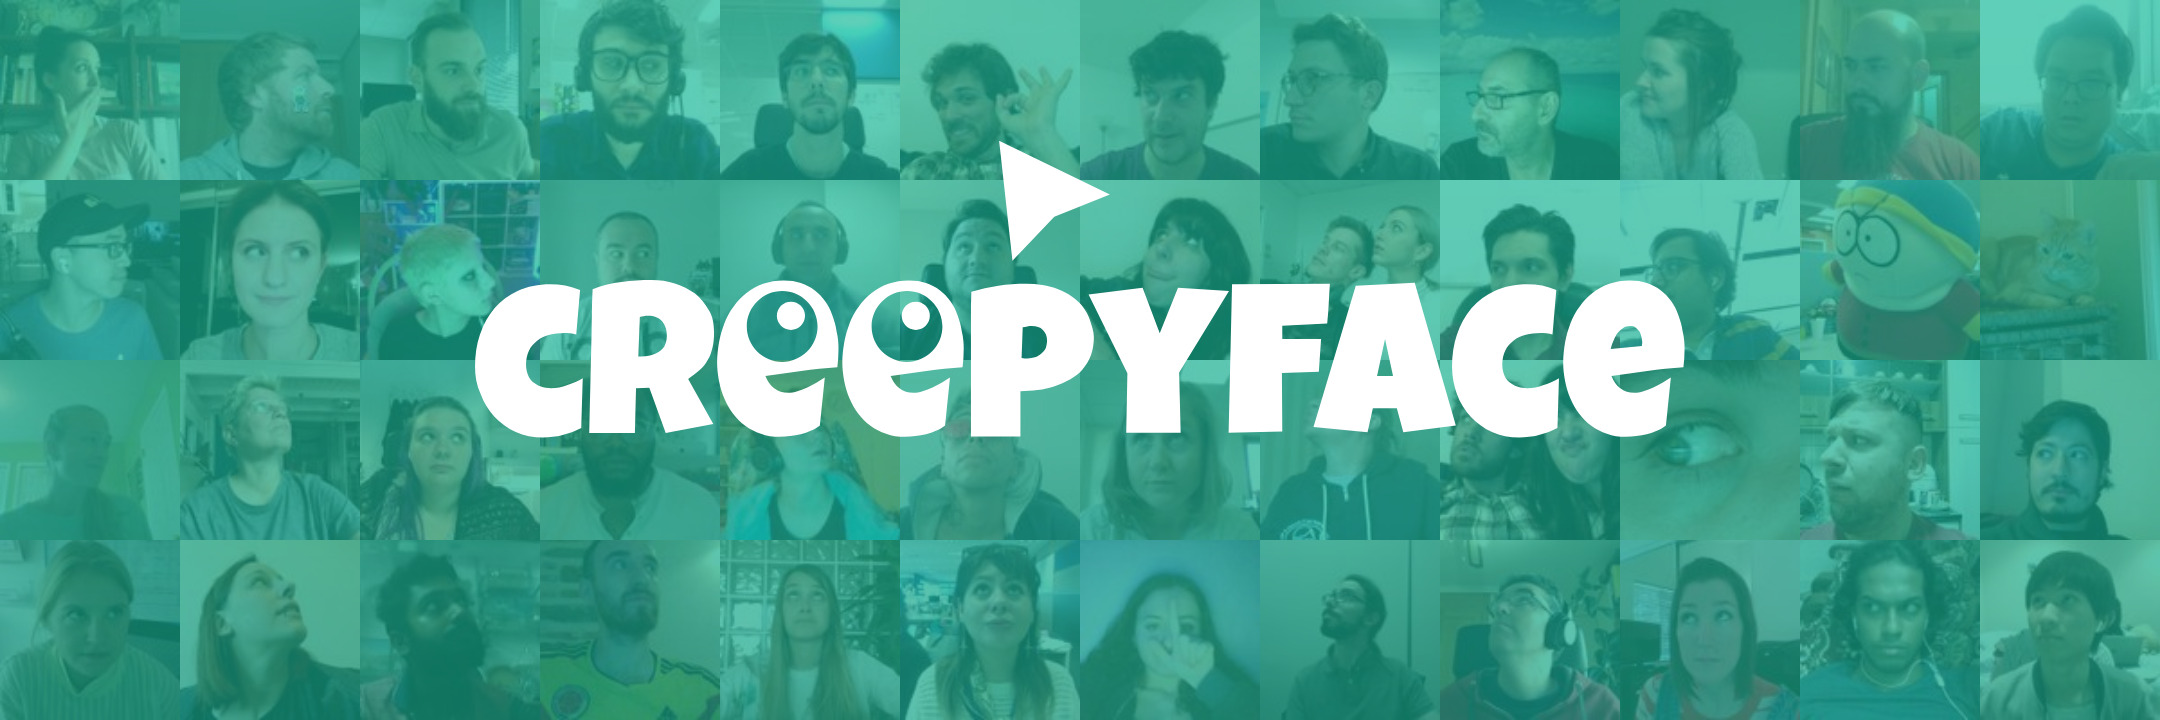 The Creepyface logo with a background full of faces looking at the pointer